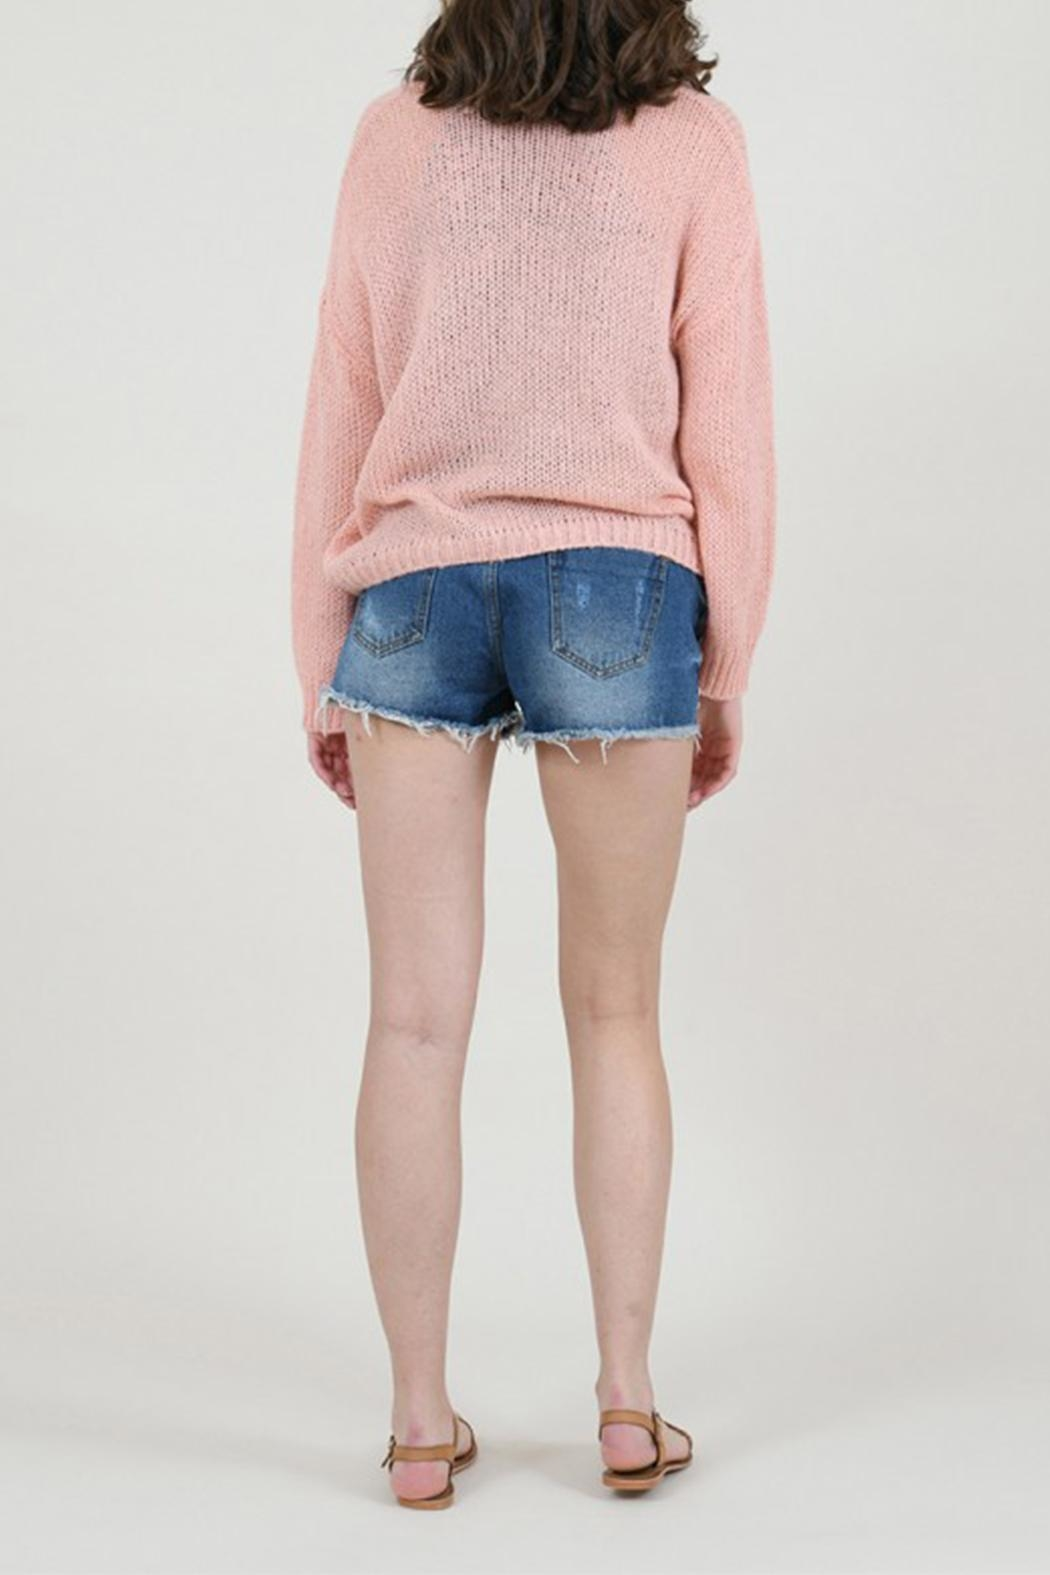 Molly Bracken Knitted V-Neck Sweater - Side Cropped Image